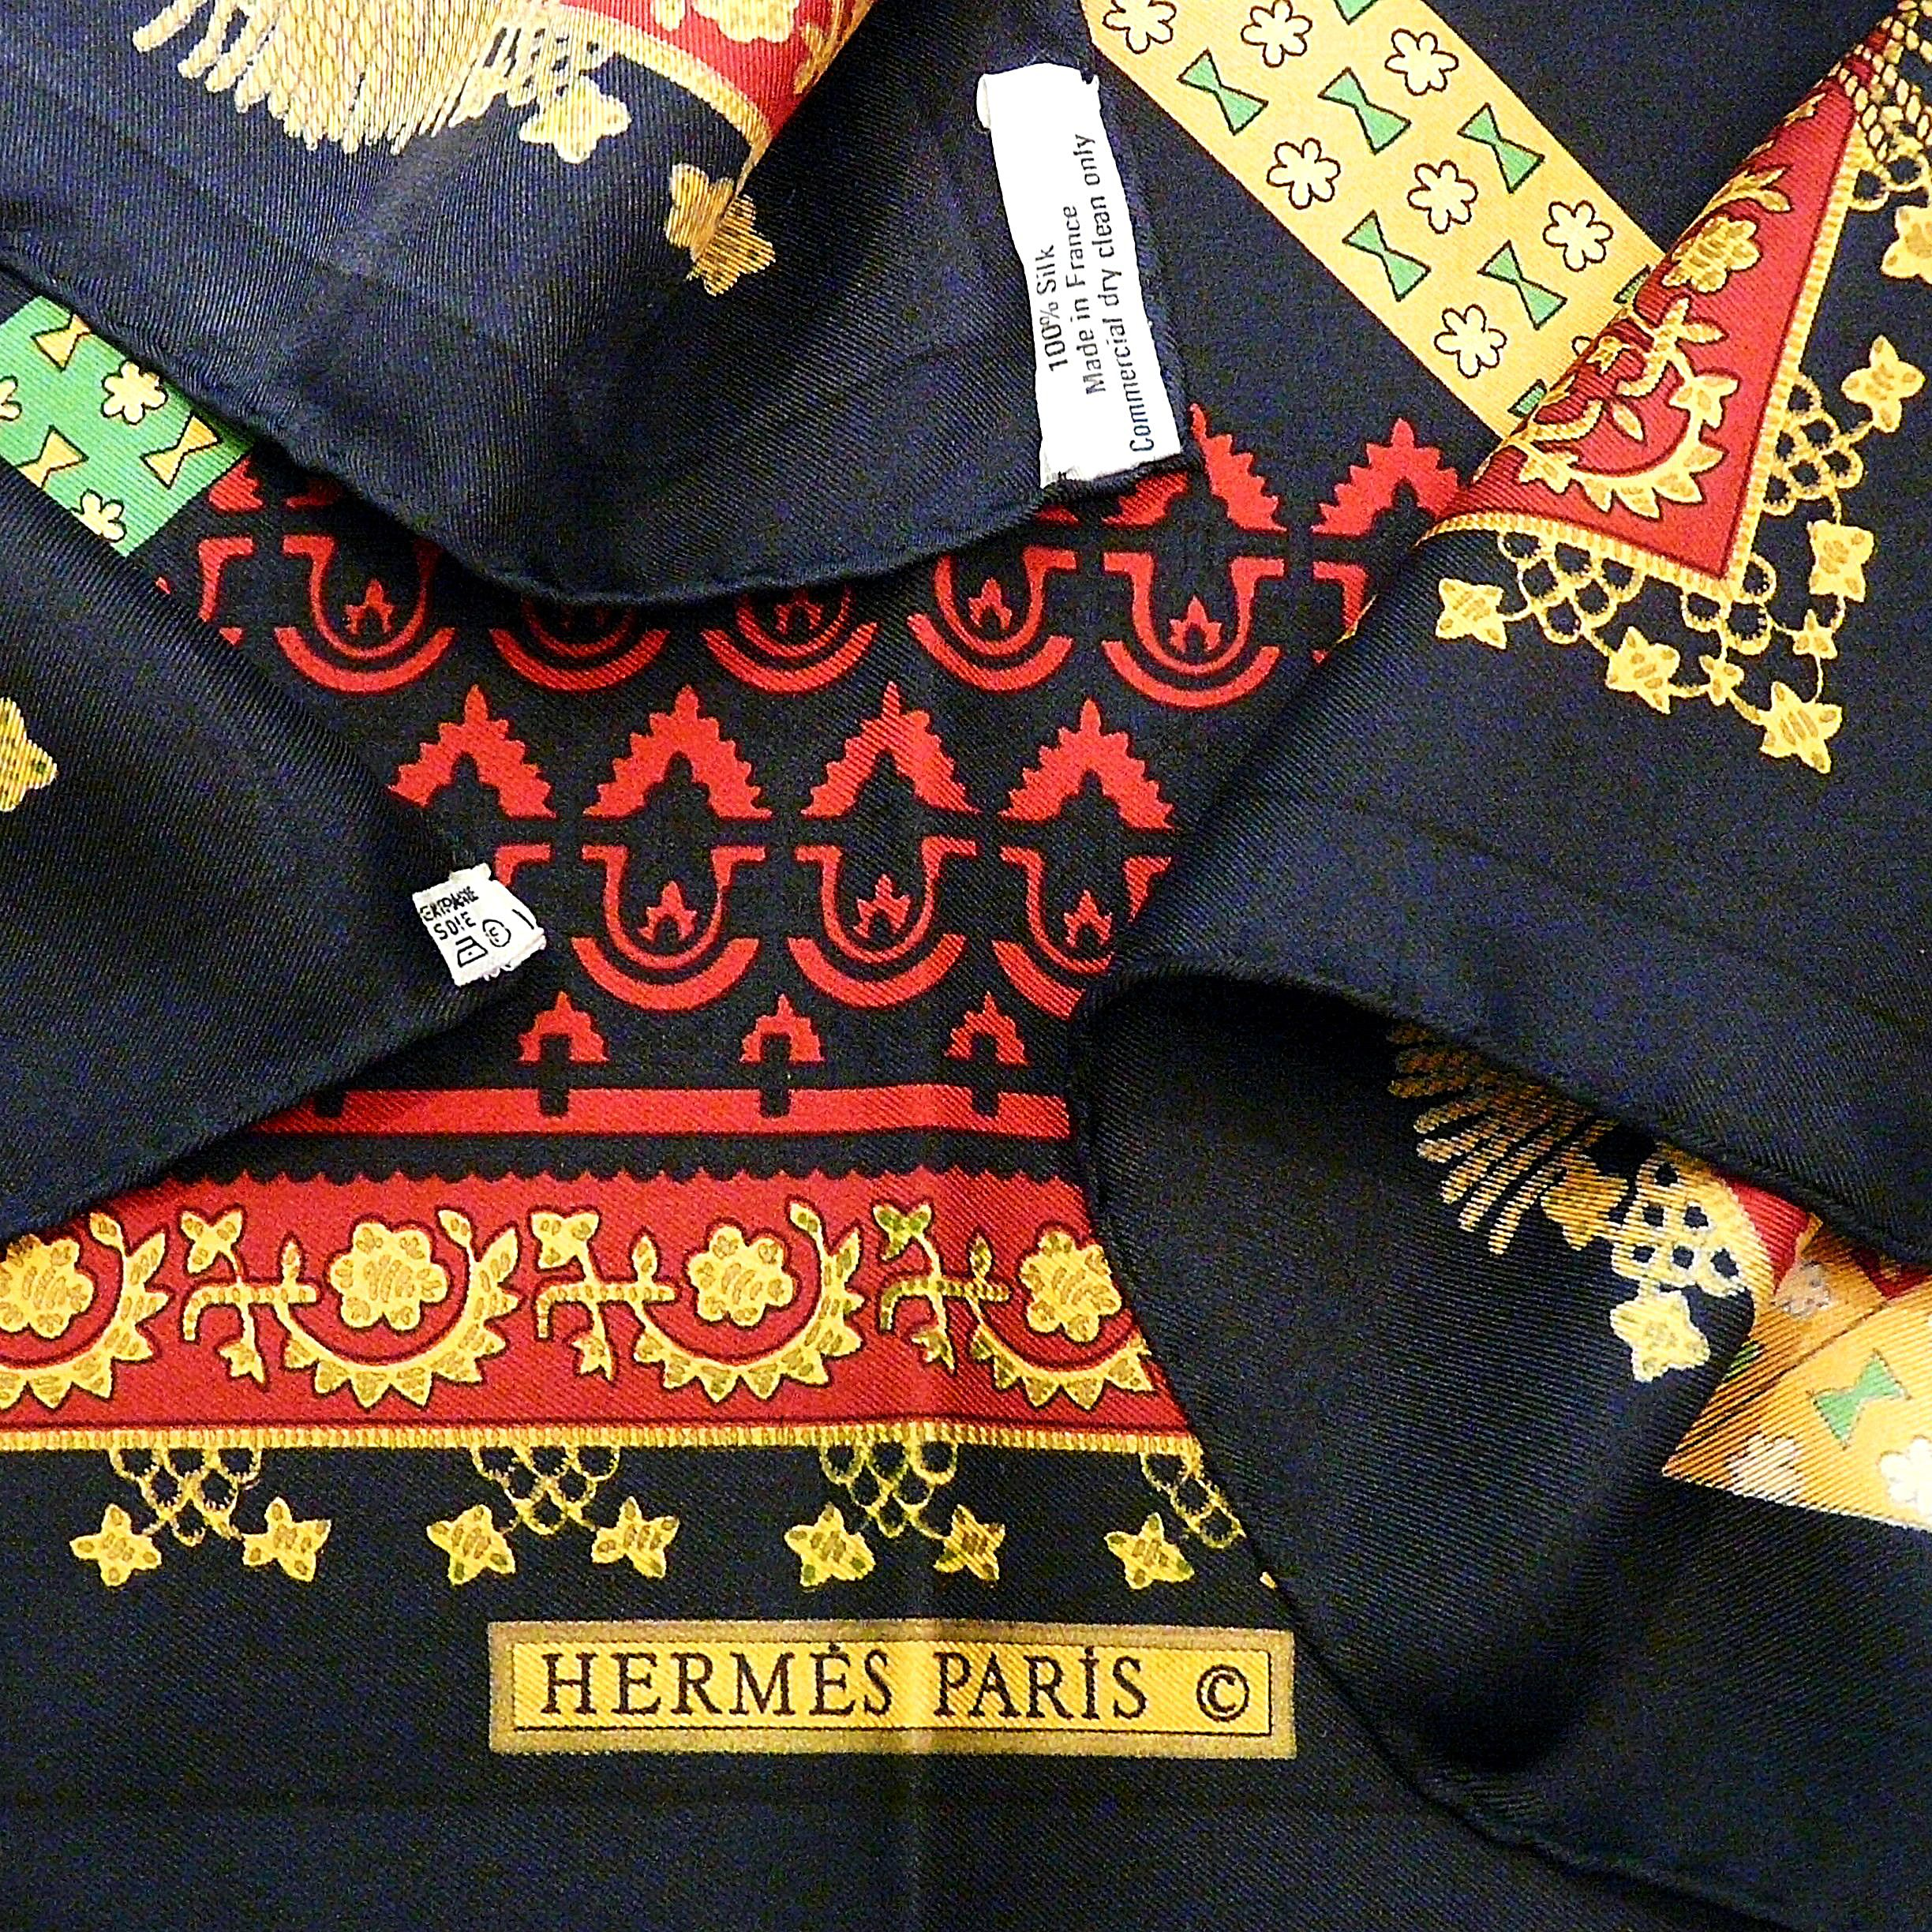 Brins d'Or HERMES Vtg Silk Scarf 2 Care Tags Copyright and Artist Signature